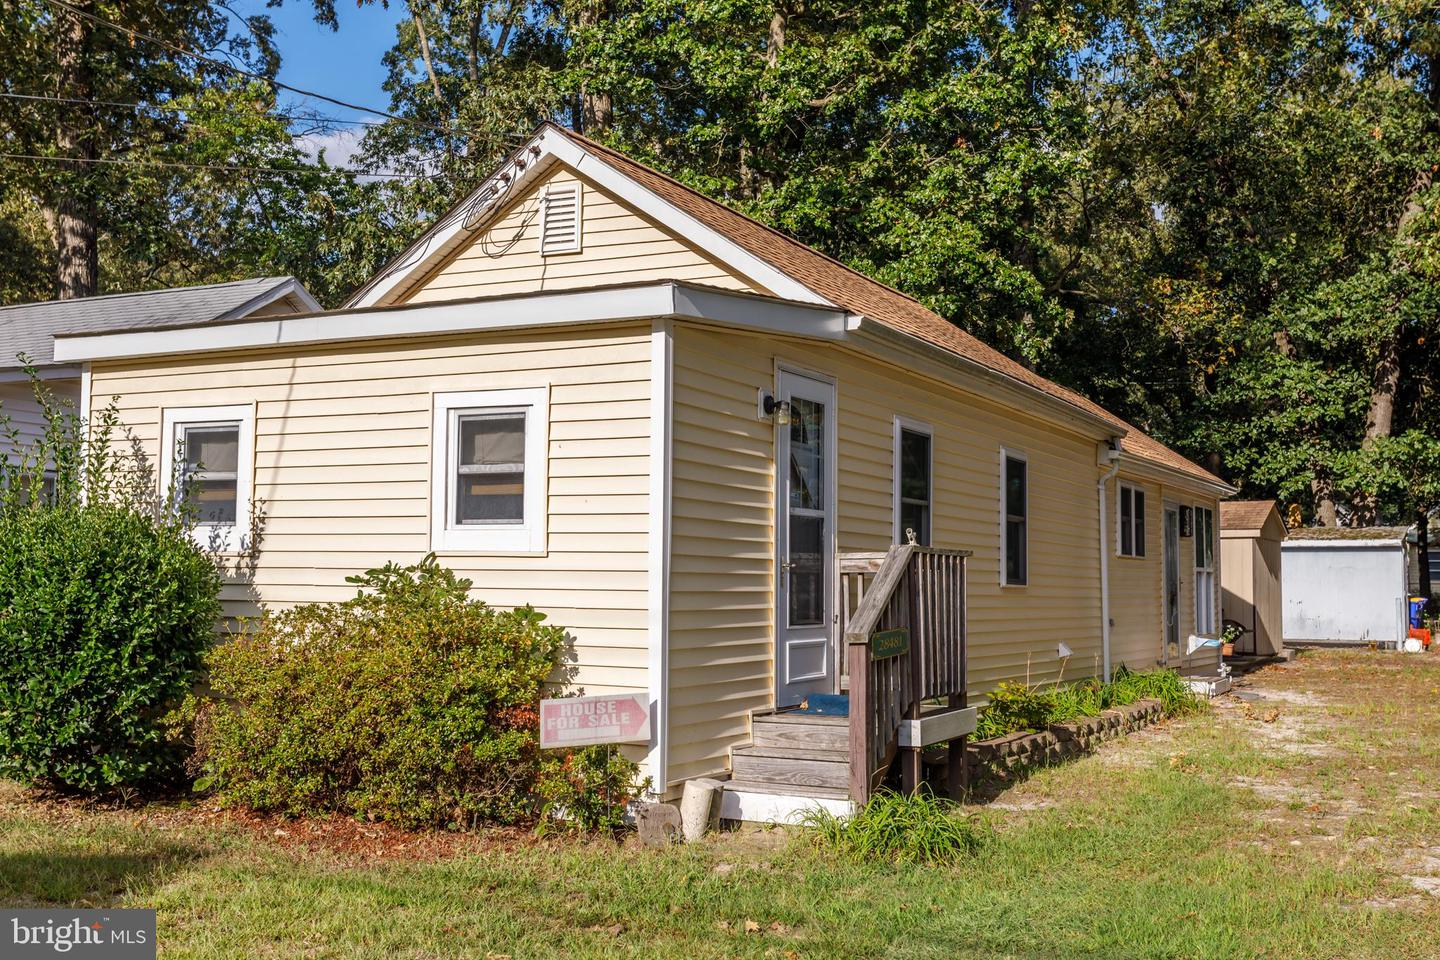 1001567786-302074316611-2020-11-17-15-57-56 Anegada To-be-built Home Tbd   Millsboro, DE Real Estate For Sale   MLS# 1001569634  - Lee Ann Group